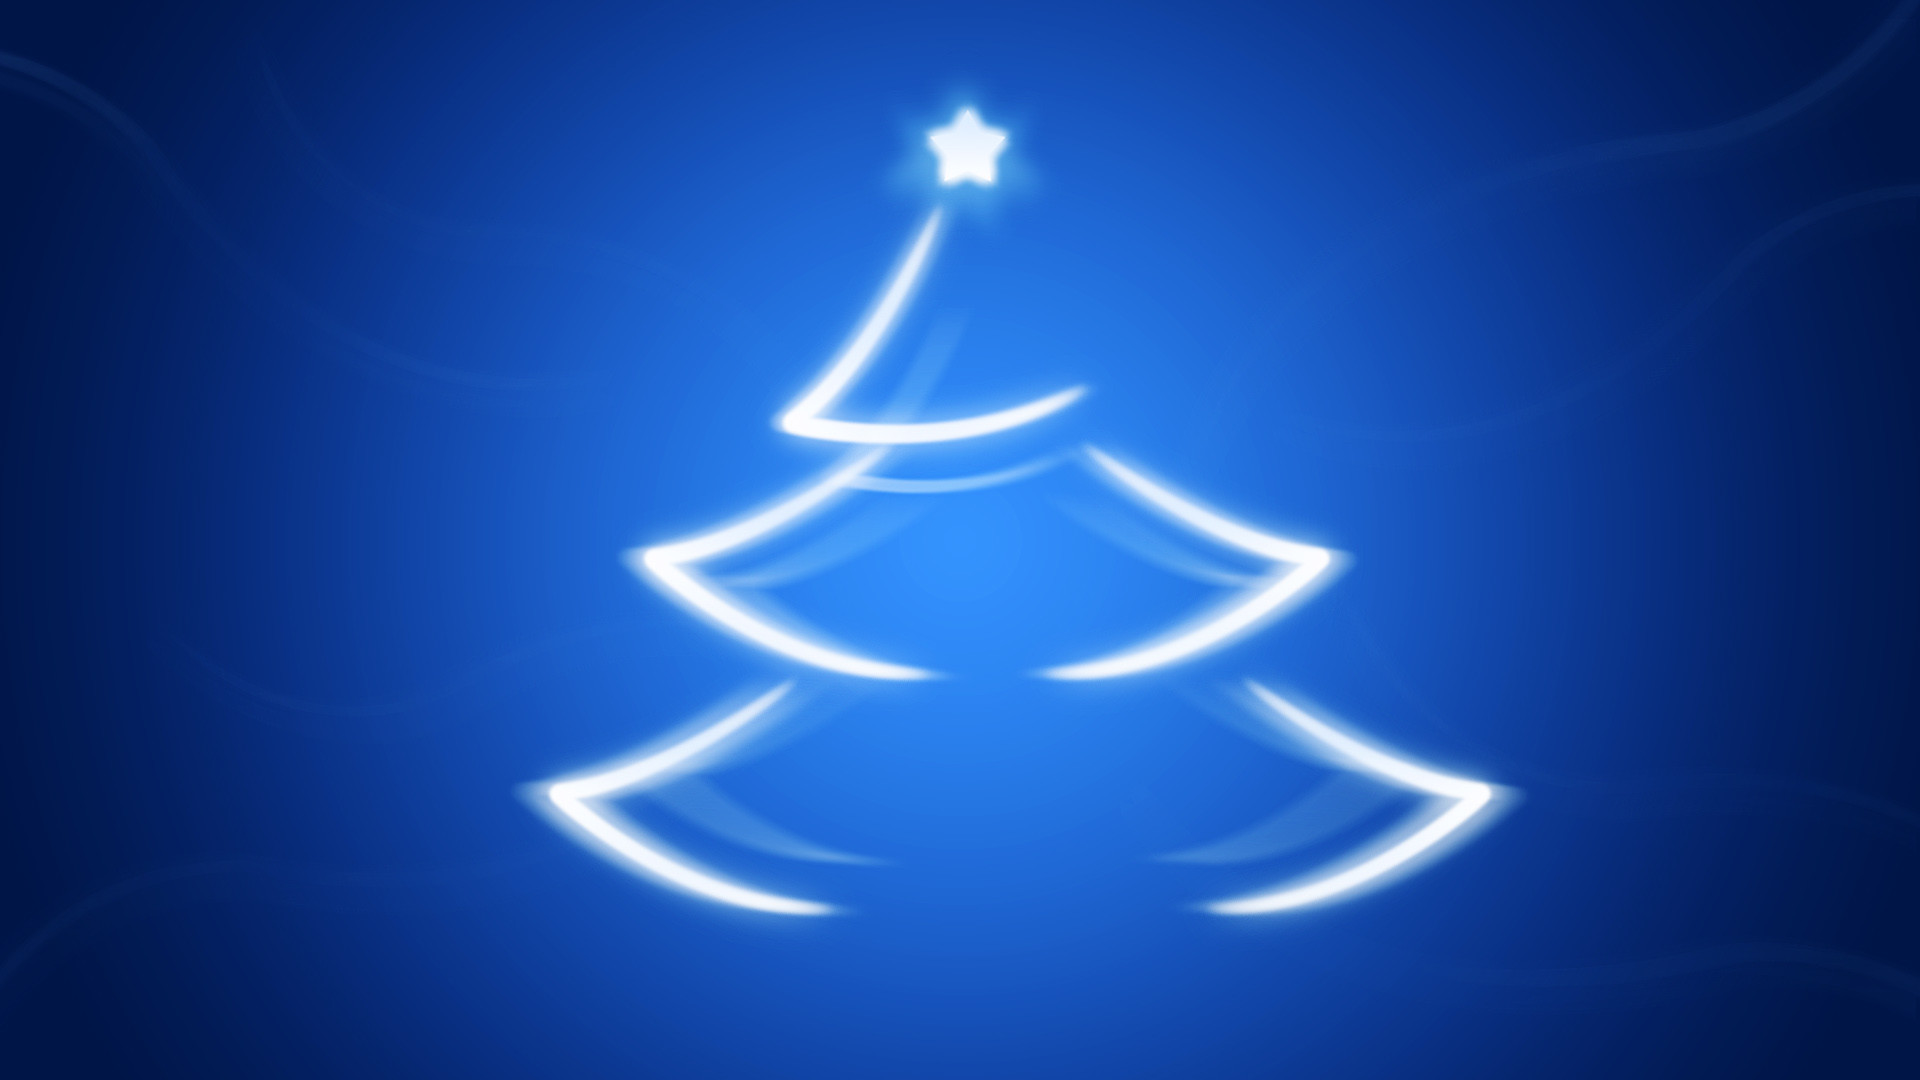 How To Get Live Wallpapers On Iphone 5 Blue Christmas Wallpaper 70 Images